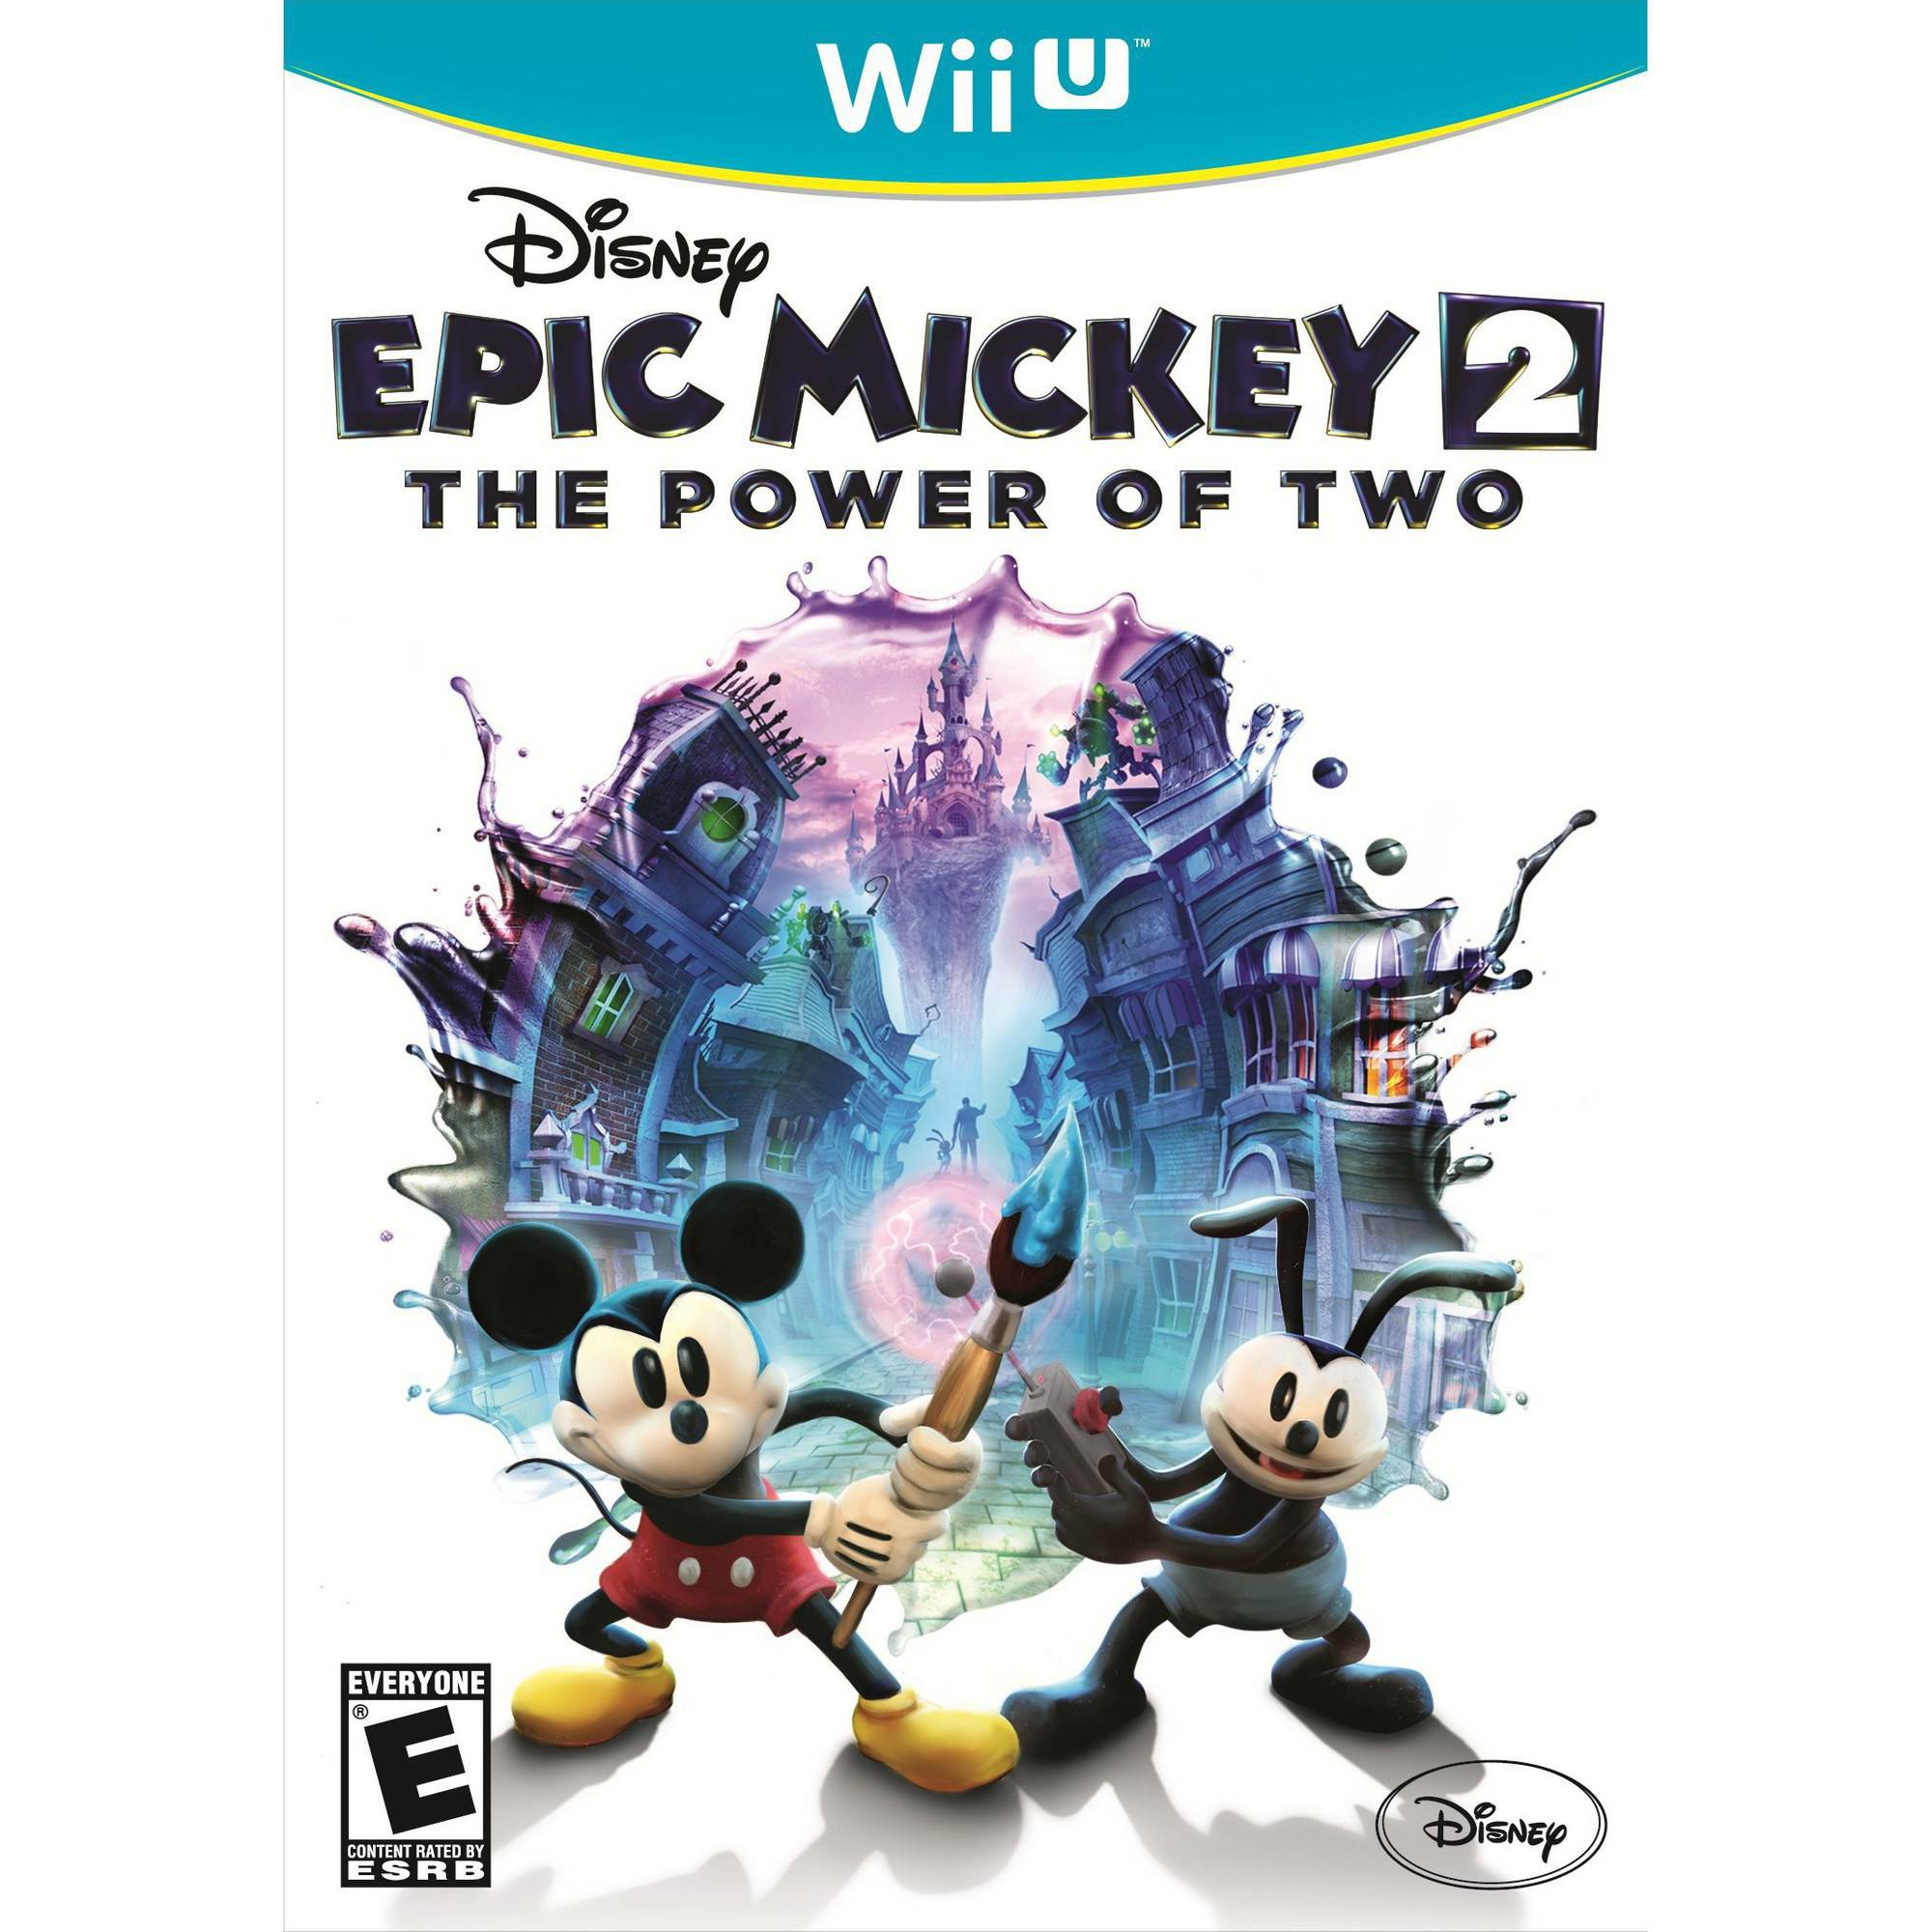 Epic Mickey 2 Power Of Two (Wii U) - Pre-Owned